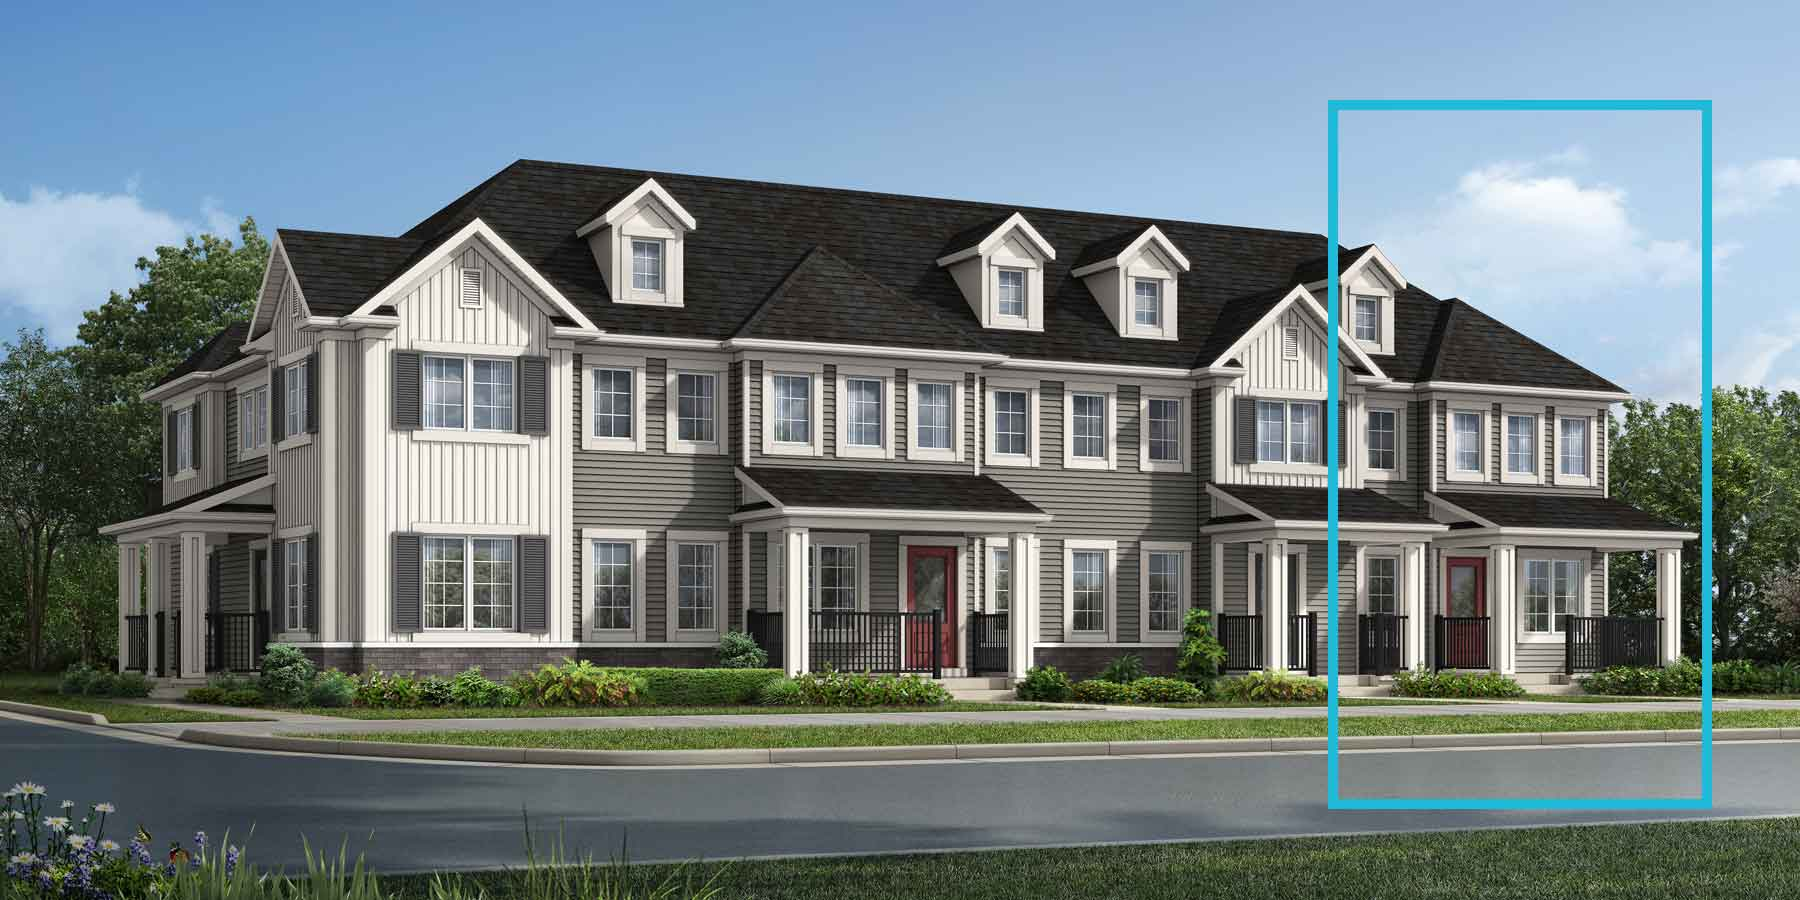 Ripley End Plan colonial_southwinds_ripleyend_main at Southwinds in Airdrie Alberta by Mattamy Homes